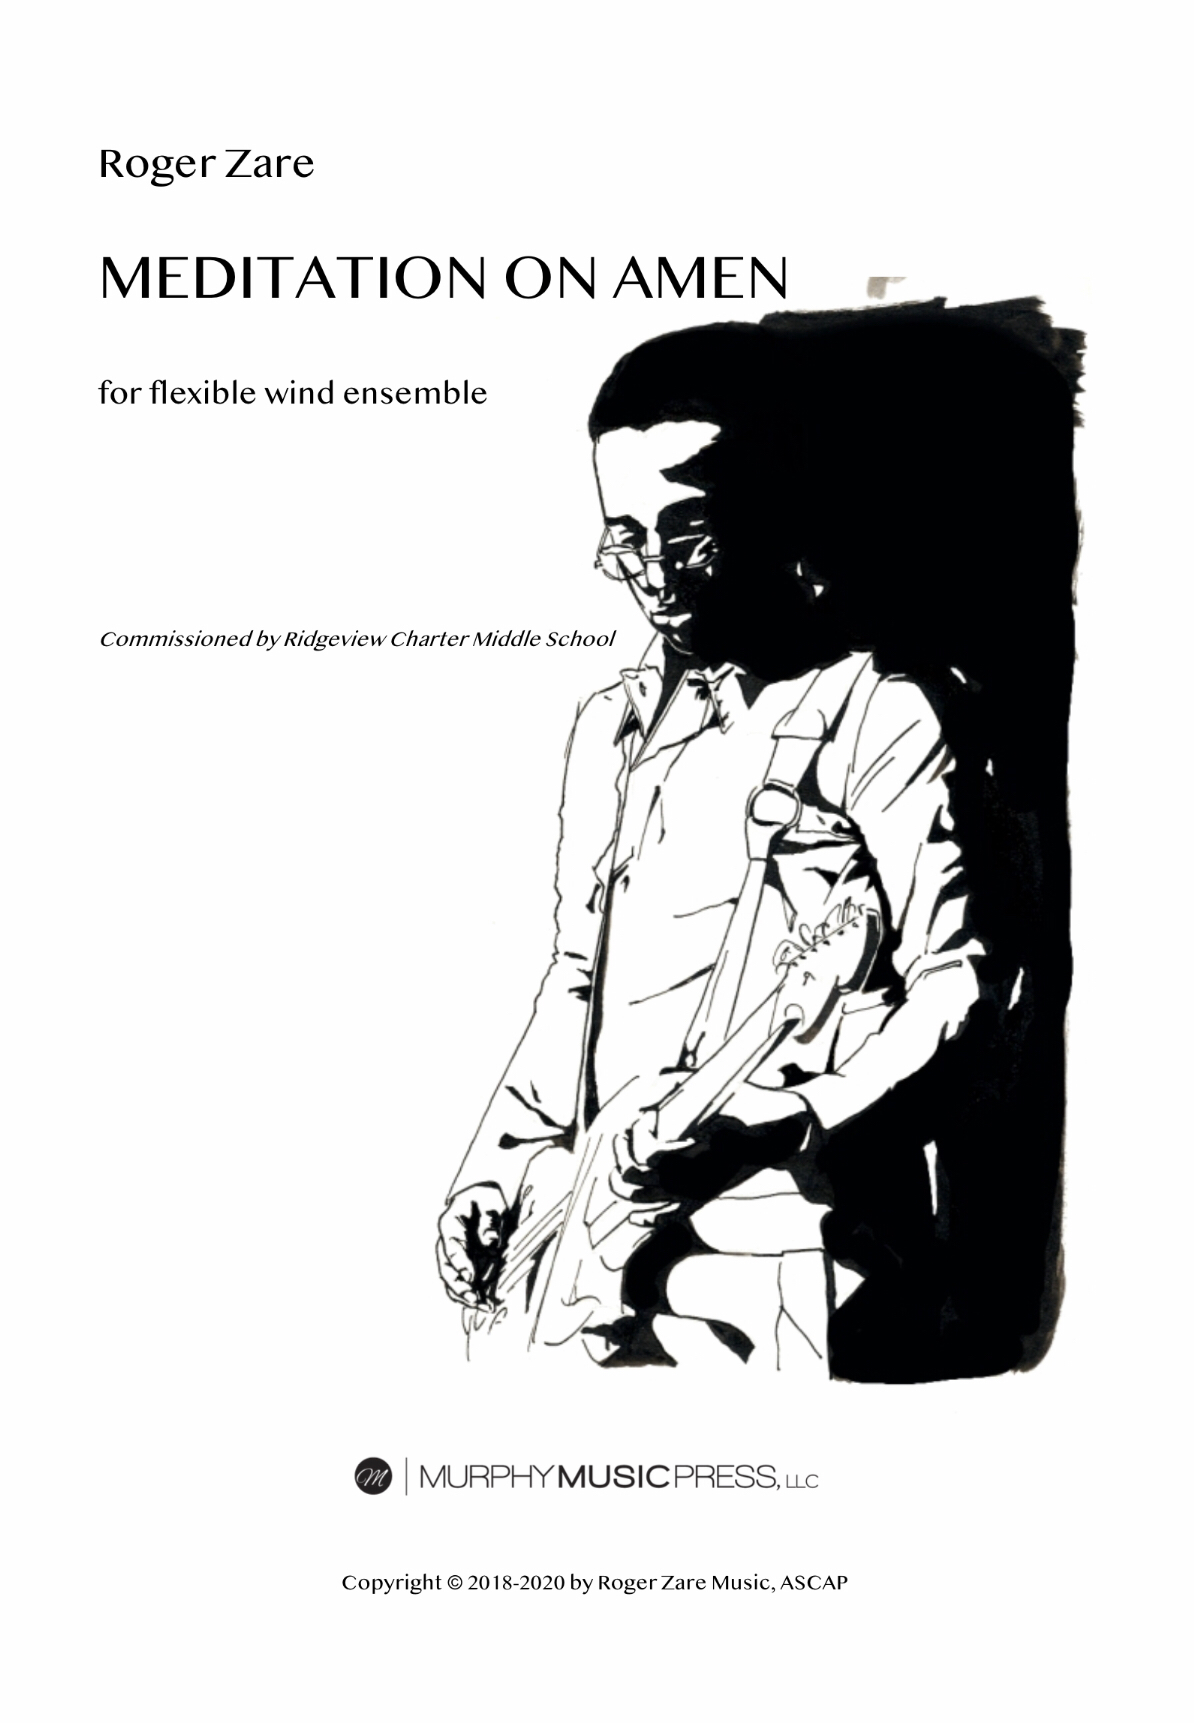 Meditation On Amen by Roger Zare